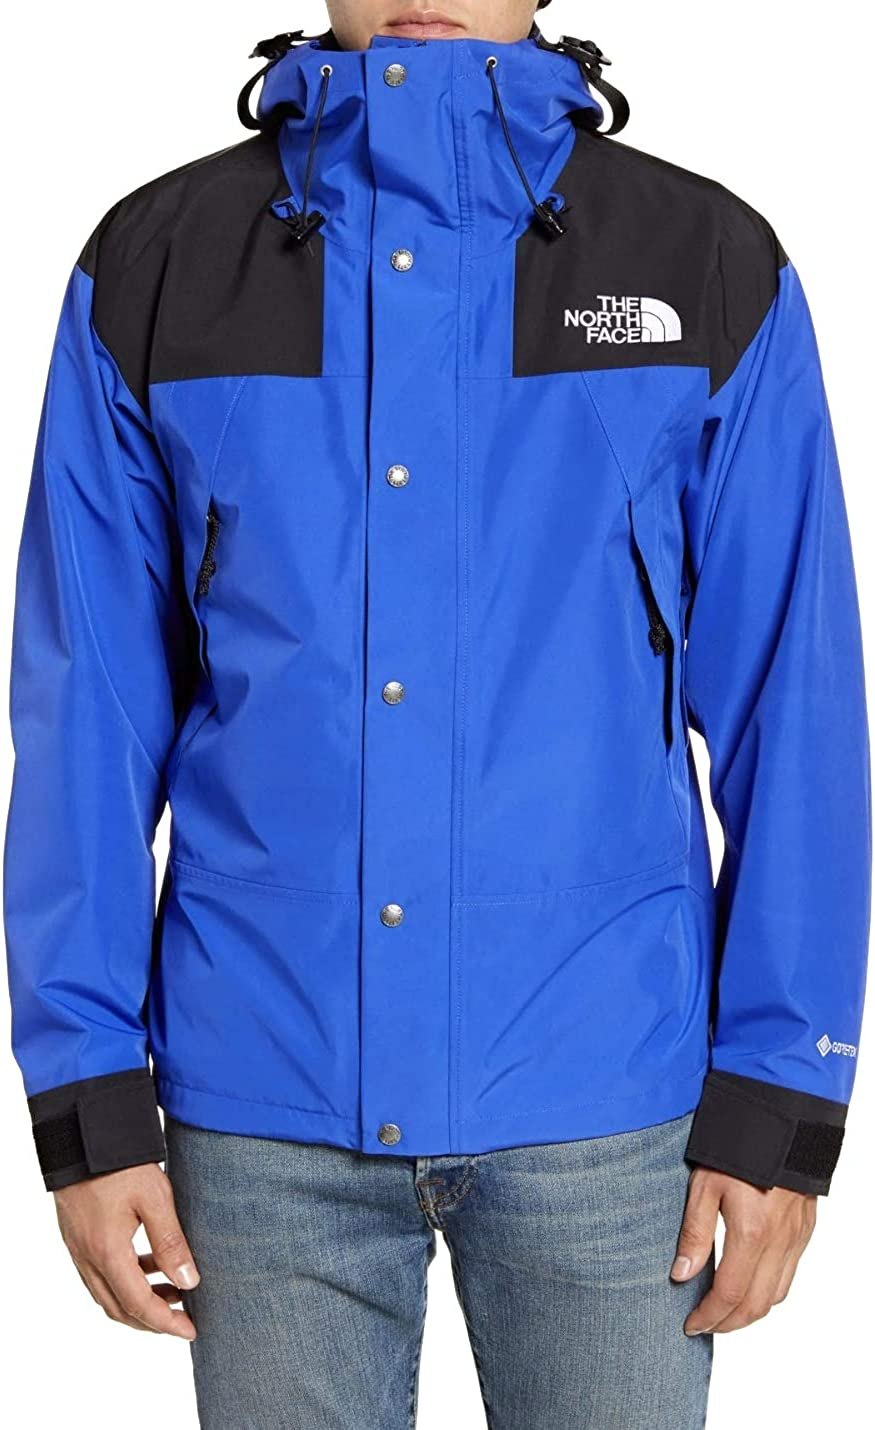 The North Face Men 1990 Retro Mountain Jacket Gore-Tex TNF Blue Size X-Large